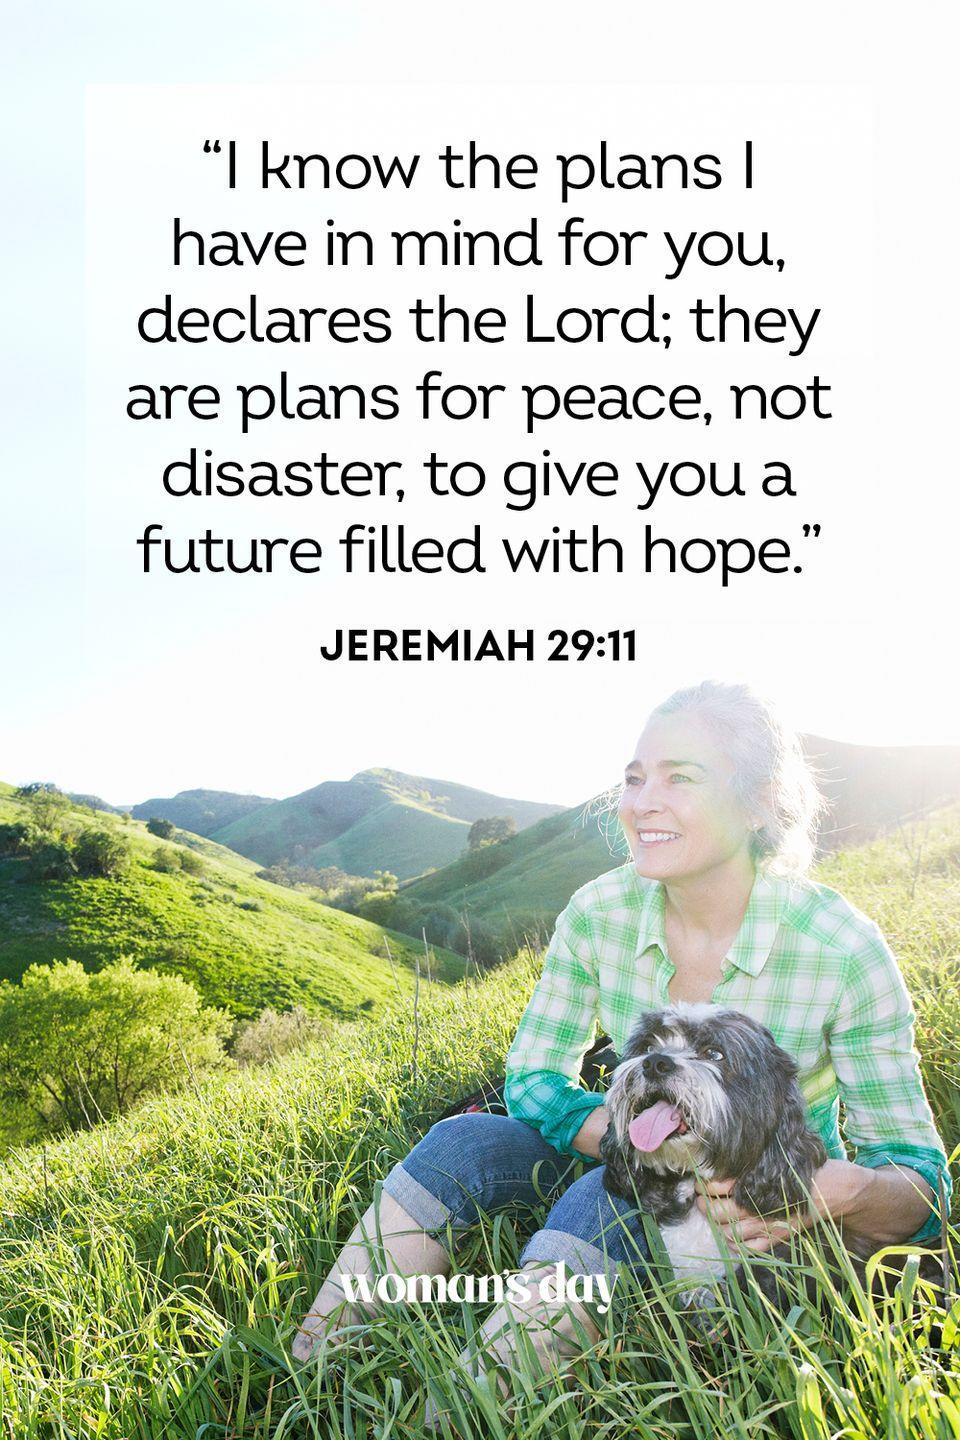 """<p>""""I know the plans I have in mind for you, declares the Lord; they are plans for peace, not disaster, to give you a future filled with hope."""" — Jeremiah 29:11</p><p><strong>The Good News</strong>: Your thoughts are so powerful. Imagine yourself at peace, and you will be.</p>"""